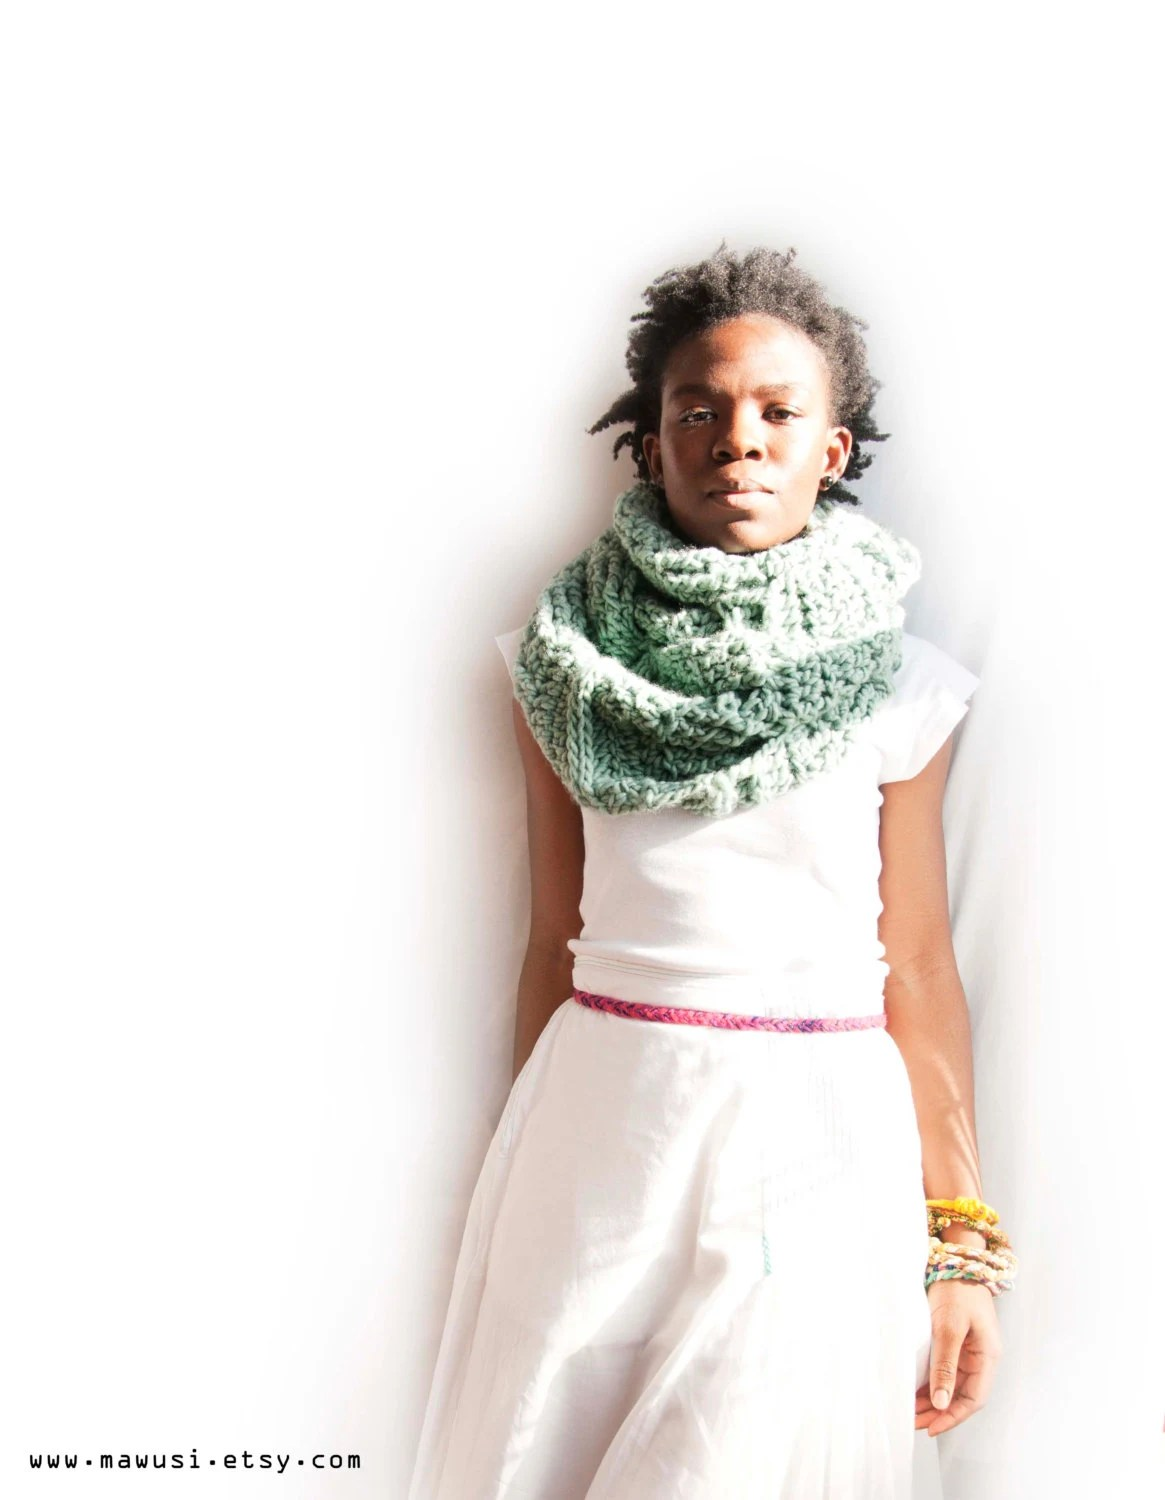 Tsapitsapi Hand Crochet Infinity Cicle Scarf in Teal -- Limited Edition - Mawusi